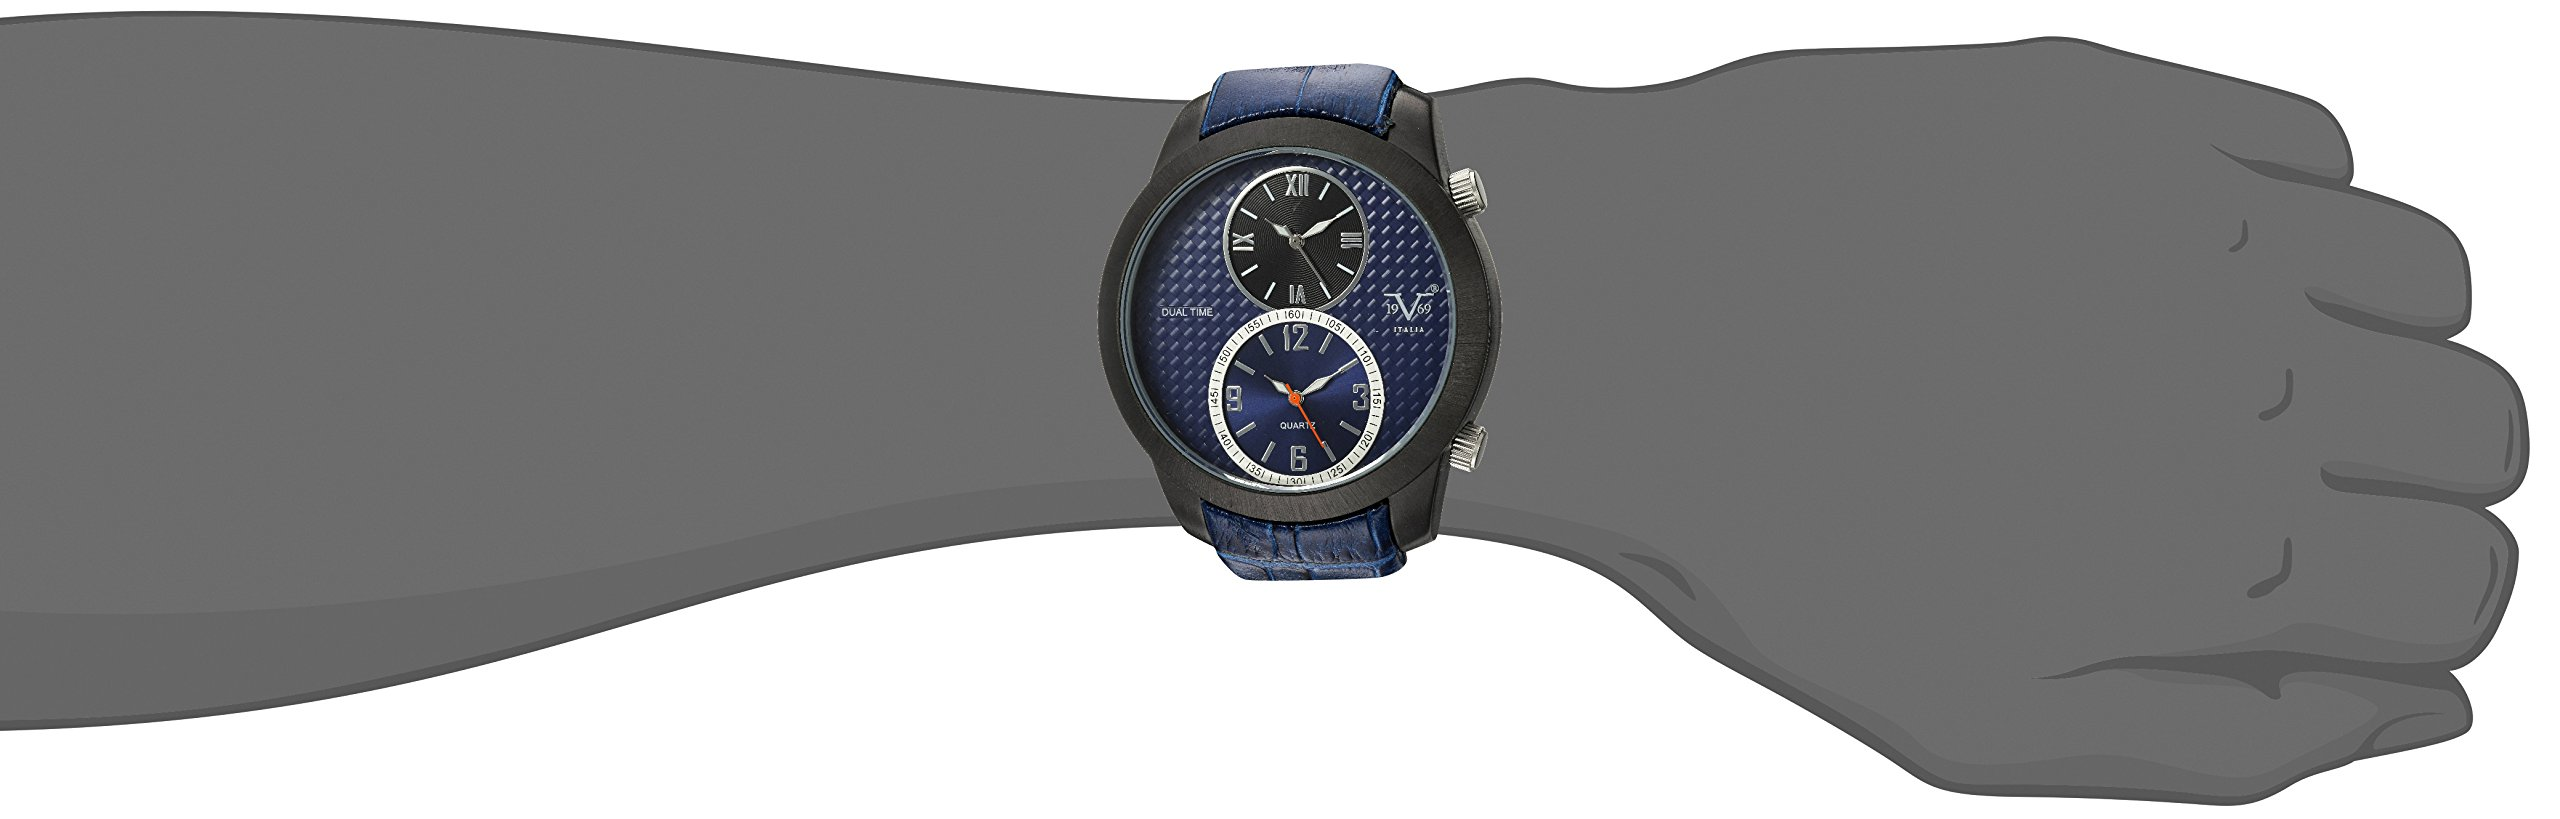 V19.69 Italia Men's Quartz Metal and Leather Casual Watch, Color:Blue (Model: 37VM103201A) by Wrist Armor (Image #2)